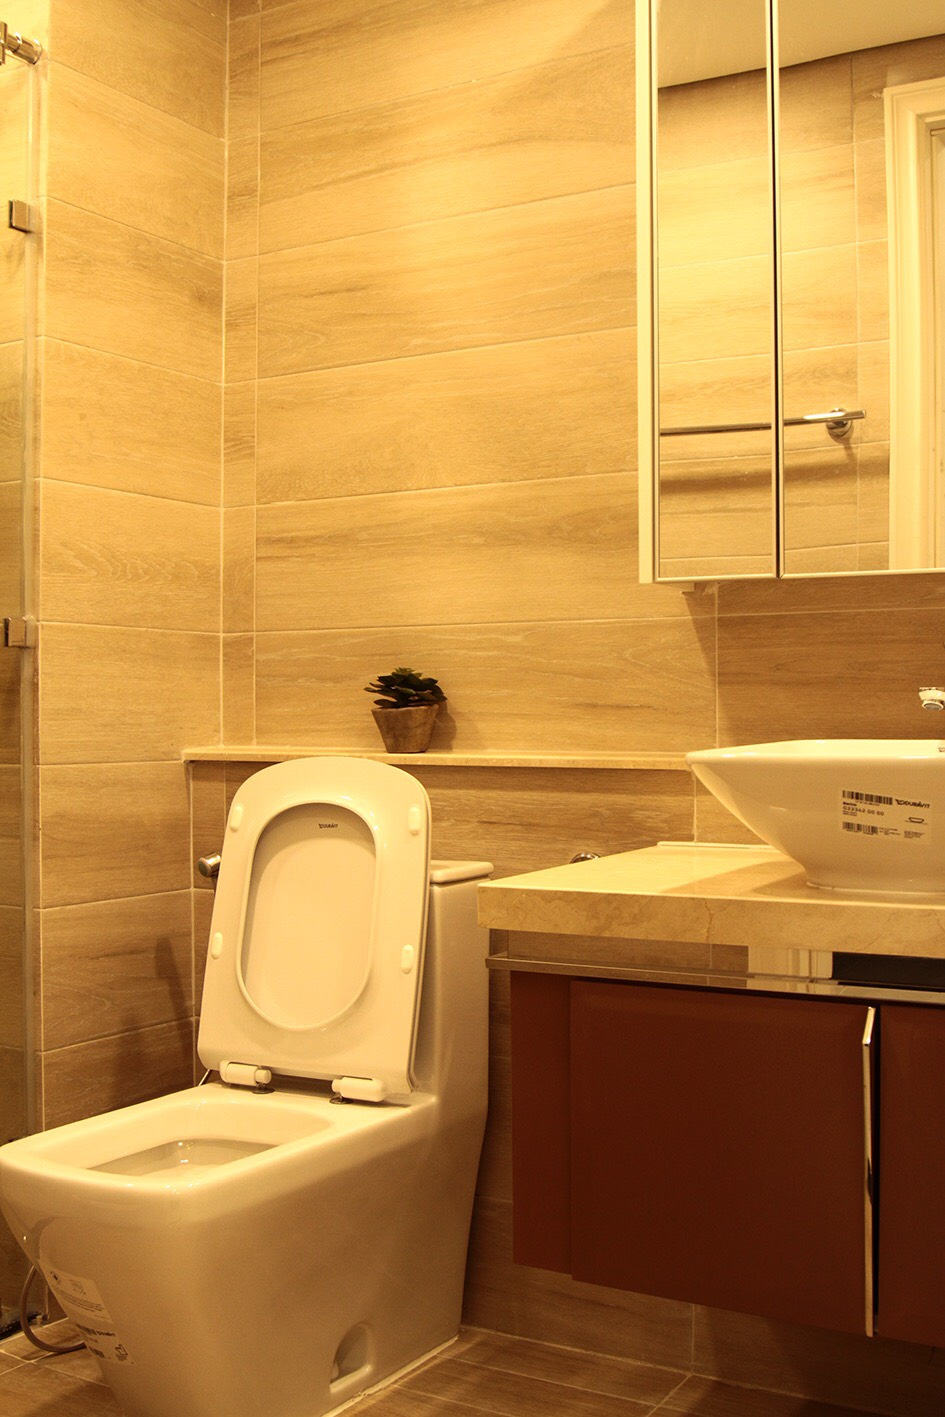 D102994 - Vinhomes Golden River Apartment For Rent & Sale Ho Chi Minh - 2 bedroom